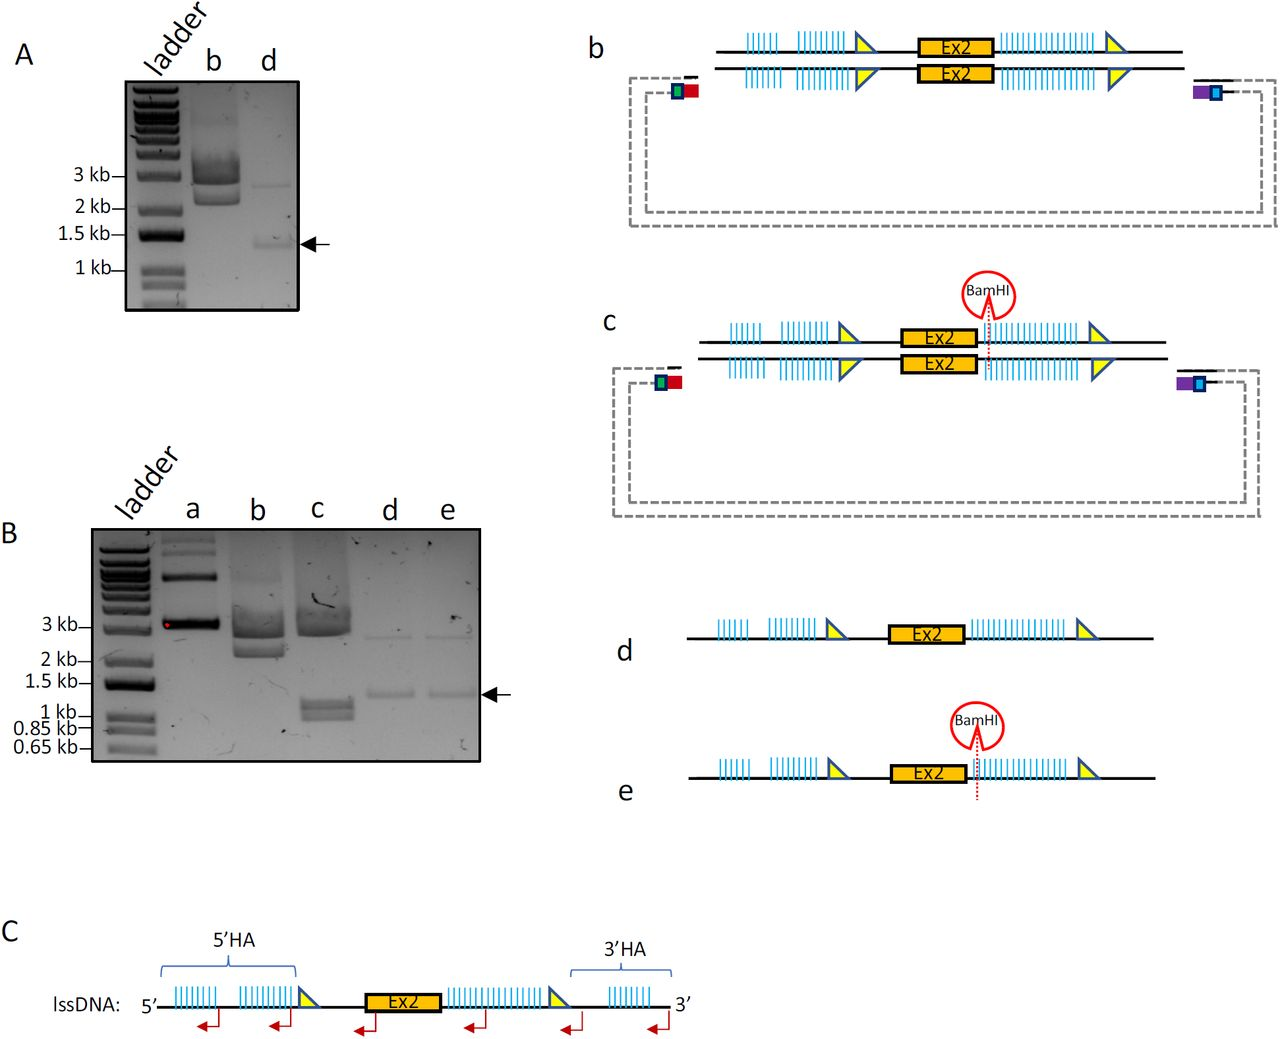 CRISPR- CLIP : Procuration of lssDNA from dsDNA template Genotyping results of the CKO mice generated with the acquired lssDNA via Easi-CRISPR . (A) dsDNA template anchored in the default plasmid; the sense ssDNA (top strand) is the donor (lssDNA) of choice. (B) Cpf1 (with guide CLIP-B) was used to create a dsDNA incision on the plasmid at one end of the lssDNA cassette, while Cas9n (with guide CLIP-A) to create a ssDNA incision at the other end, specifically on the strand of interest (top strand in this case). (C) Upon DGLB treatment, the plasmid incised by Cpf1 and Cas9n was resolved into three stand-alone distinct-sized units (0.9% agarose gel electrophoresis): ∼4.9 kbases (donor+backbone) vs. ∼2.7 kbases (backbone) vs. ∼2.2 kbases (lssDNA donor). (D) Mice genotyping screened by RE HindIII (top) and EcoRV (bottom): a pair of external screening primers amplified 2.8 kb DNA fragment (black arrow); mice with the lssDNA donor integration should carry a floxed cassette with HindII/EcoRV site adjacent to LoxP. Upon RE digestion, mouse #4 showing the insertion of both LoxPs (∼0.8 kb vs. ∼2 kb; red asterisk), further confirmed by Sanger sequencing; mouse #6 showing only HindIII digest, indicating one LoxP insertion; mouse #7 was found to carry heterozygous 1.2 kb deletion between the two guides (used for creating CKO model), verified by Sanger sequencing, thus showing a band at ∼1.6 kb. Due to incomplete RE digest and usage of EtBr pre-stained gel, the smaller bands appeared in lighter intensity; purple asterisk: non-specific PCR band.